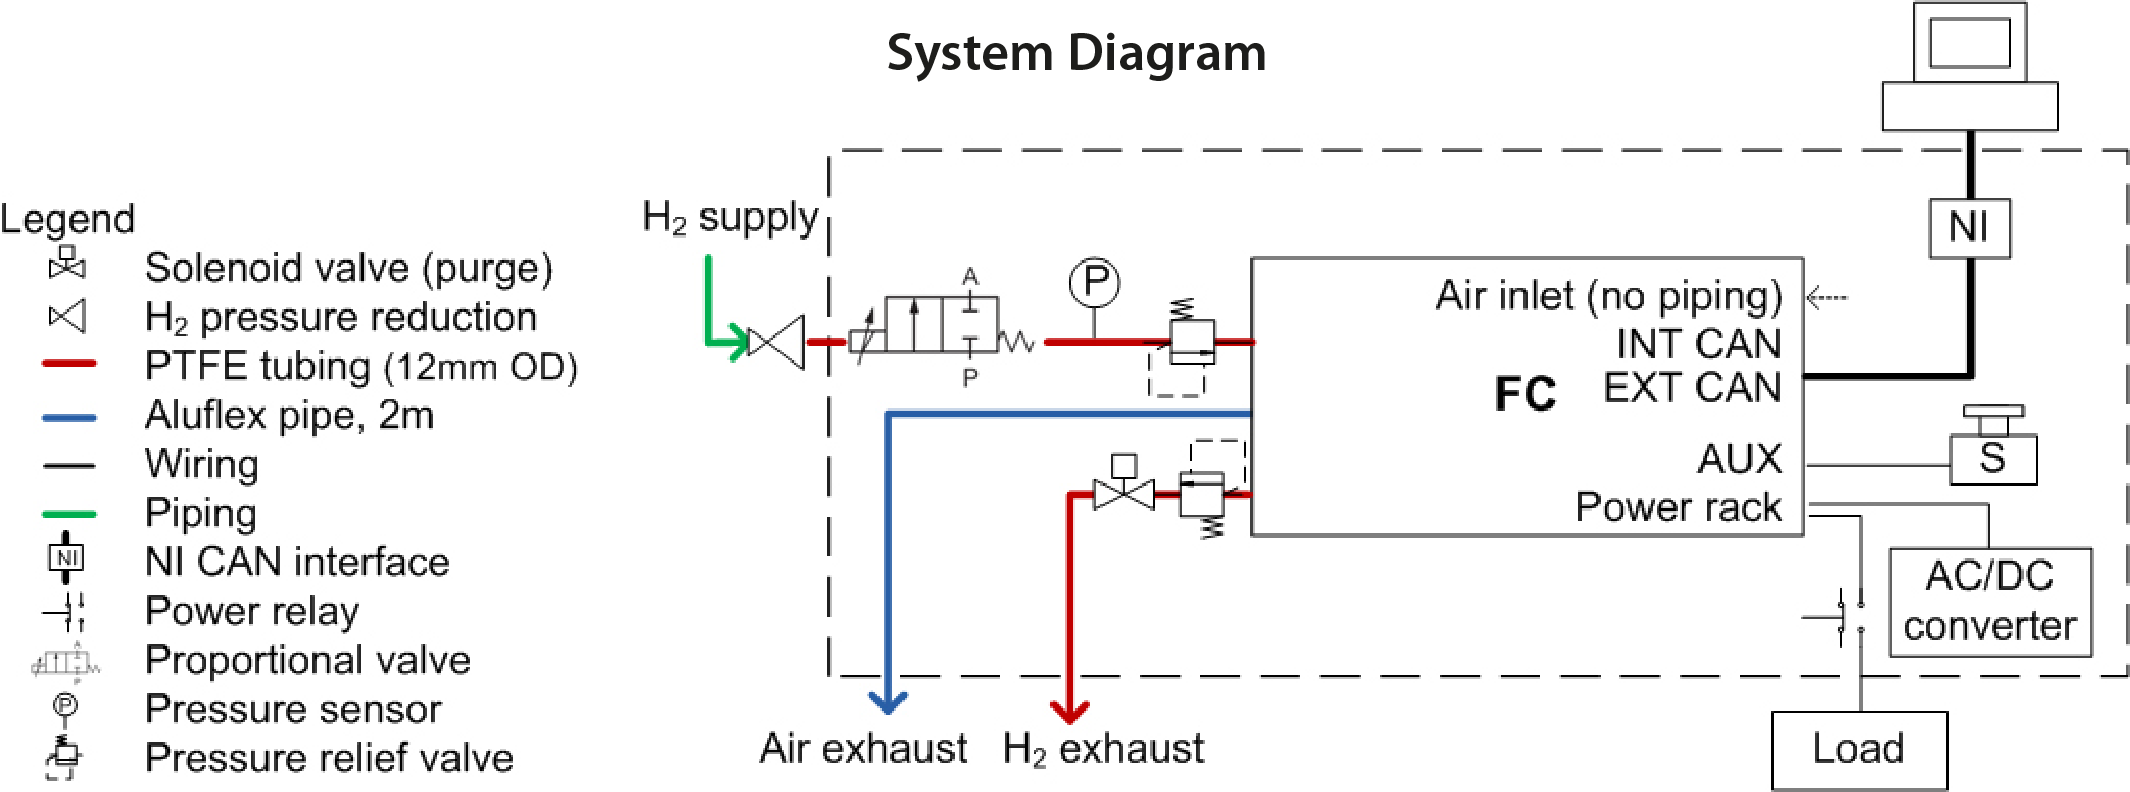 Fuel Cell System Diagram